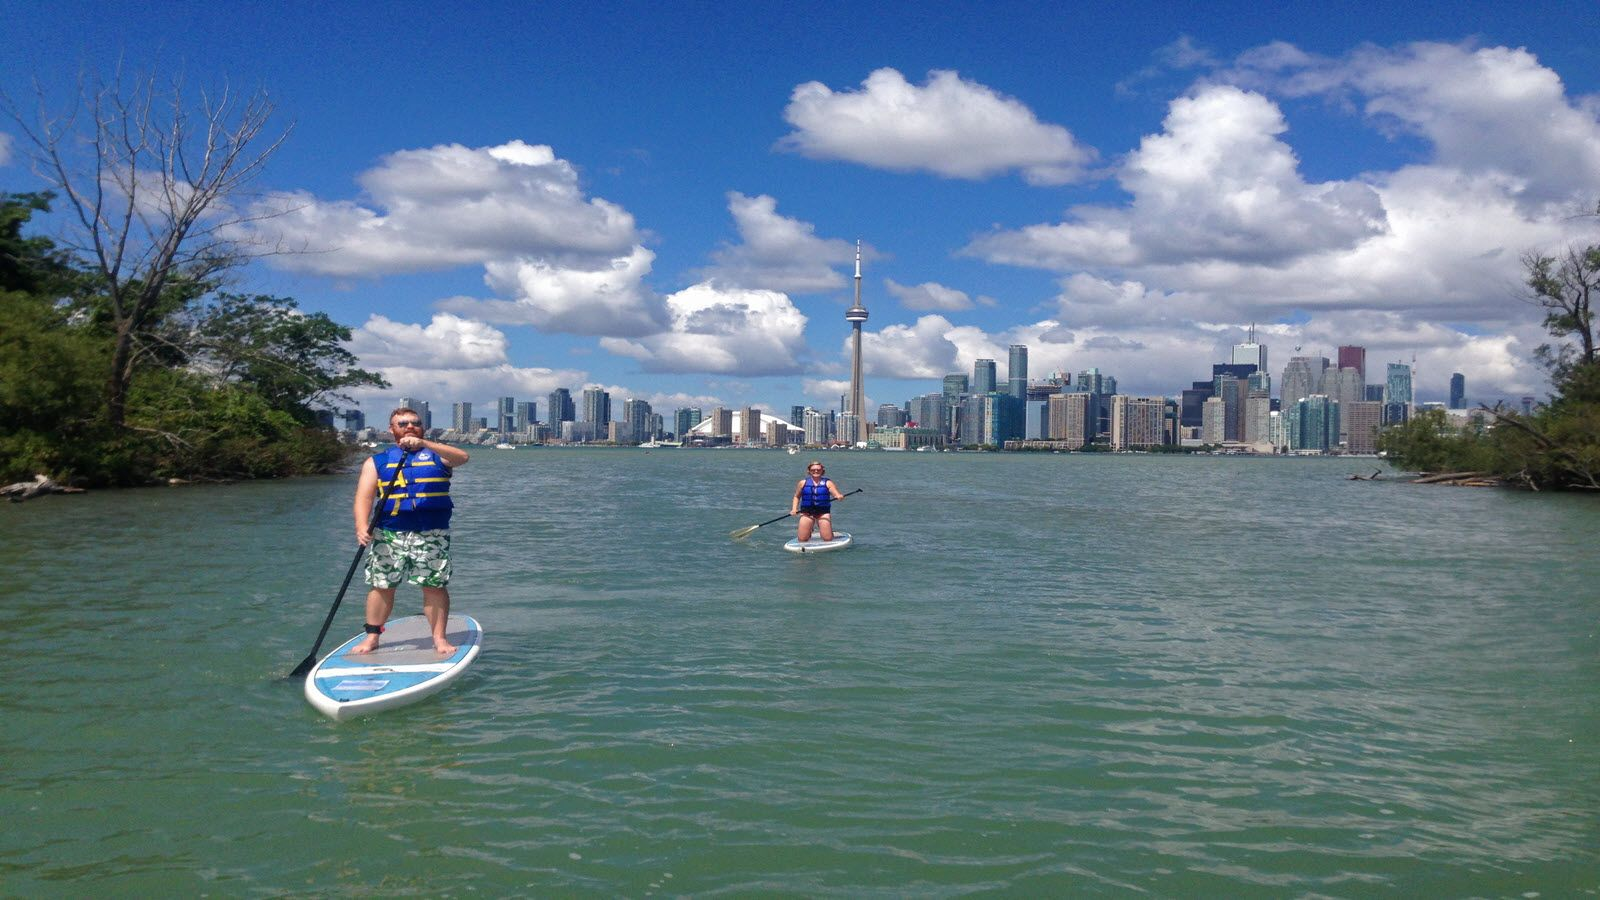 Things to do in Toronto - Toronto Island SUP